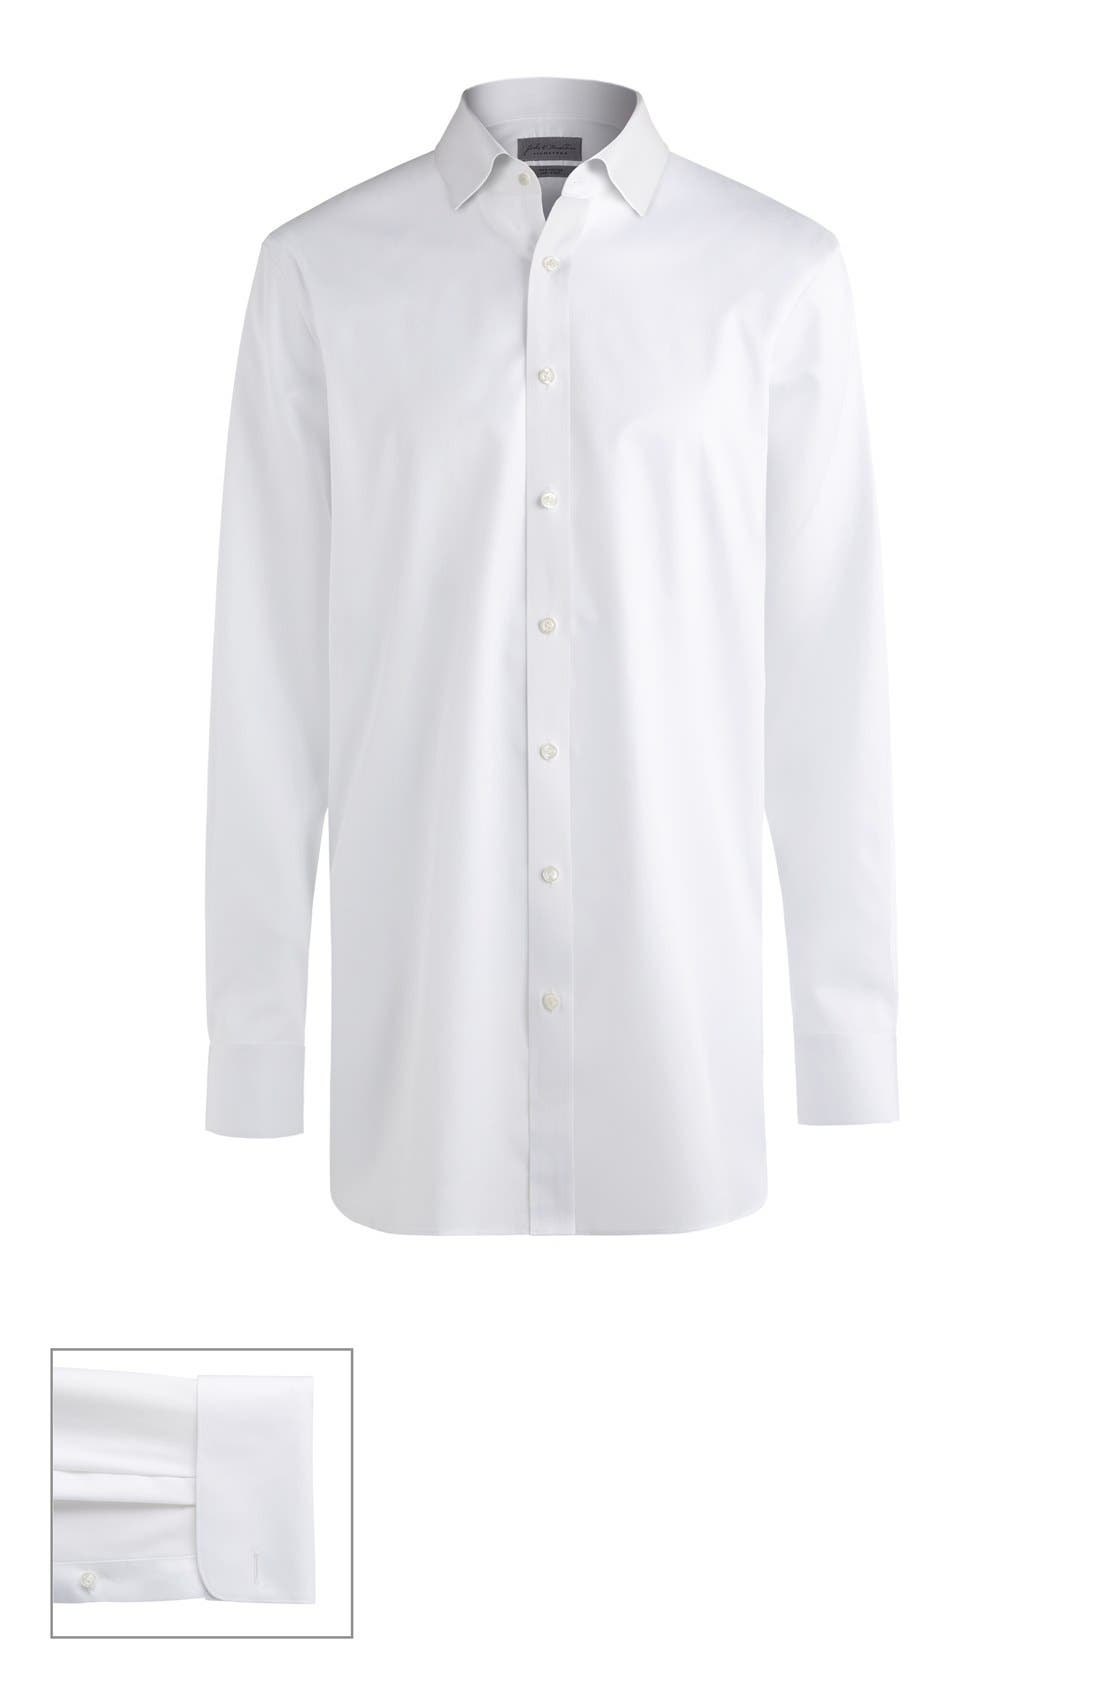 Made to Measure Extra Trim Fit Short Spread Collar Solid Dress Shirt,                         Main,                         color, White Fine Twill